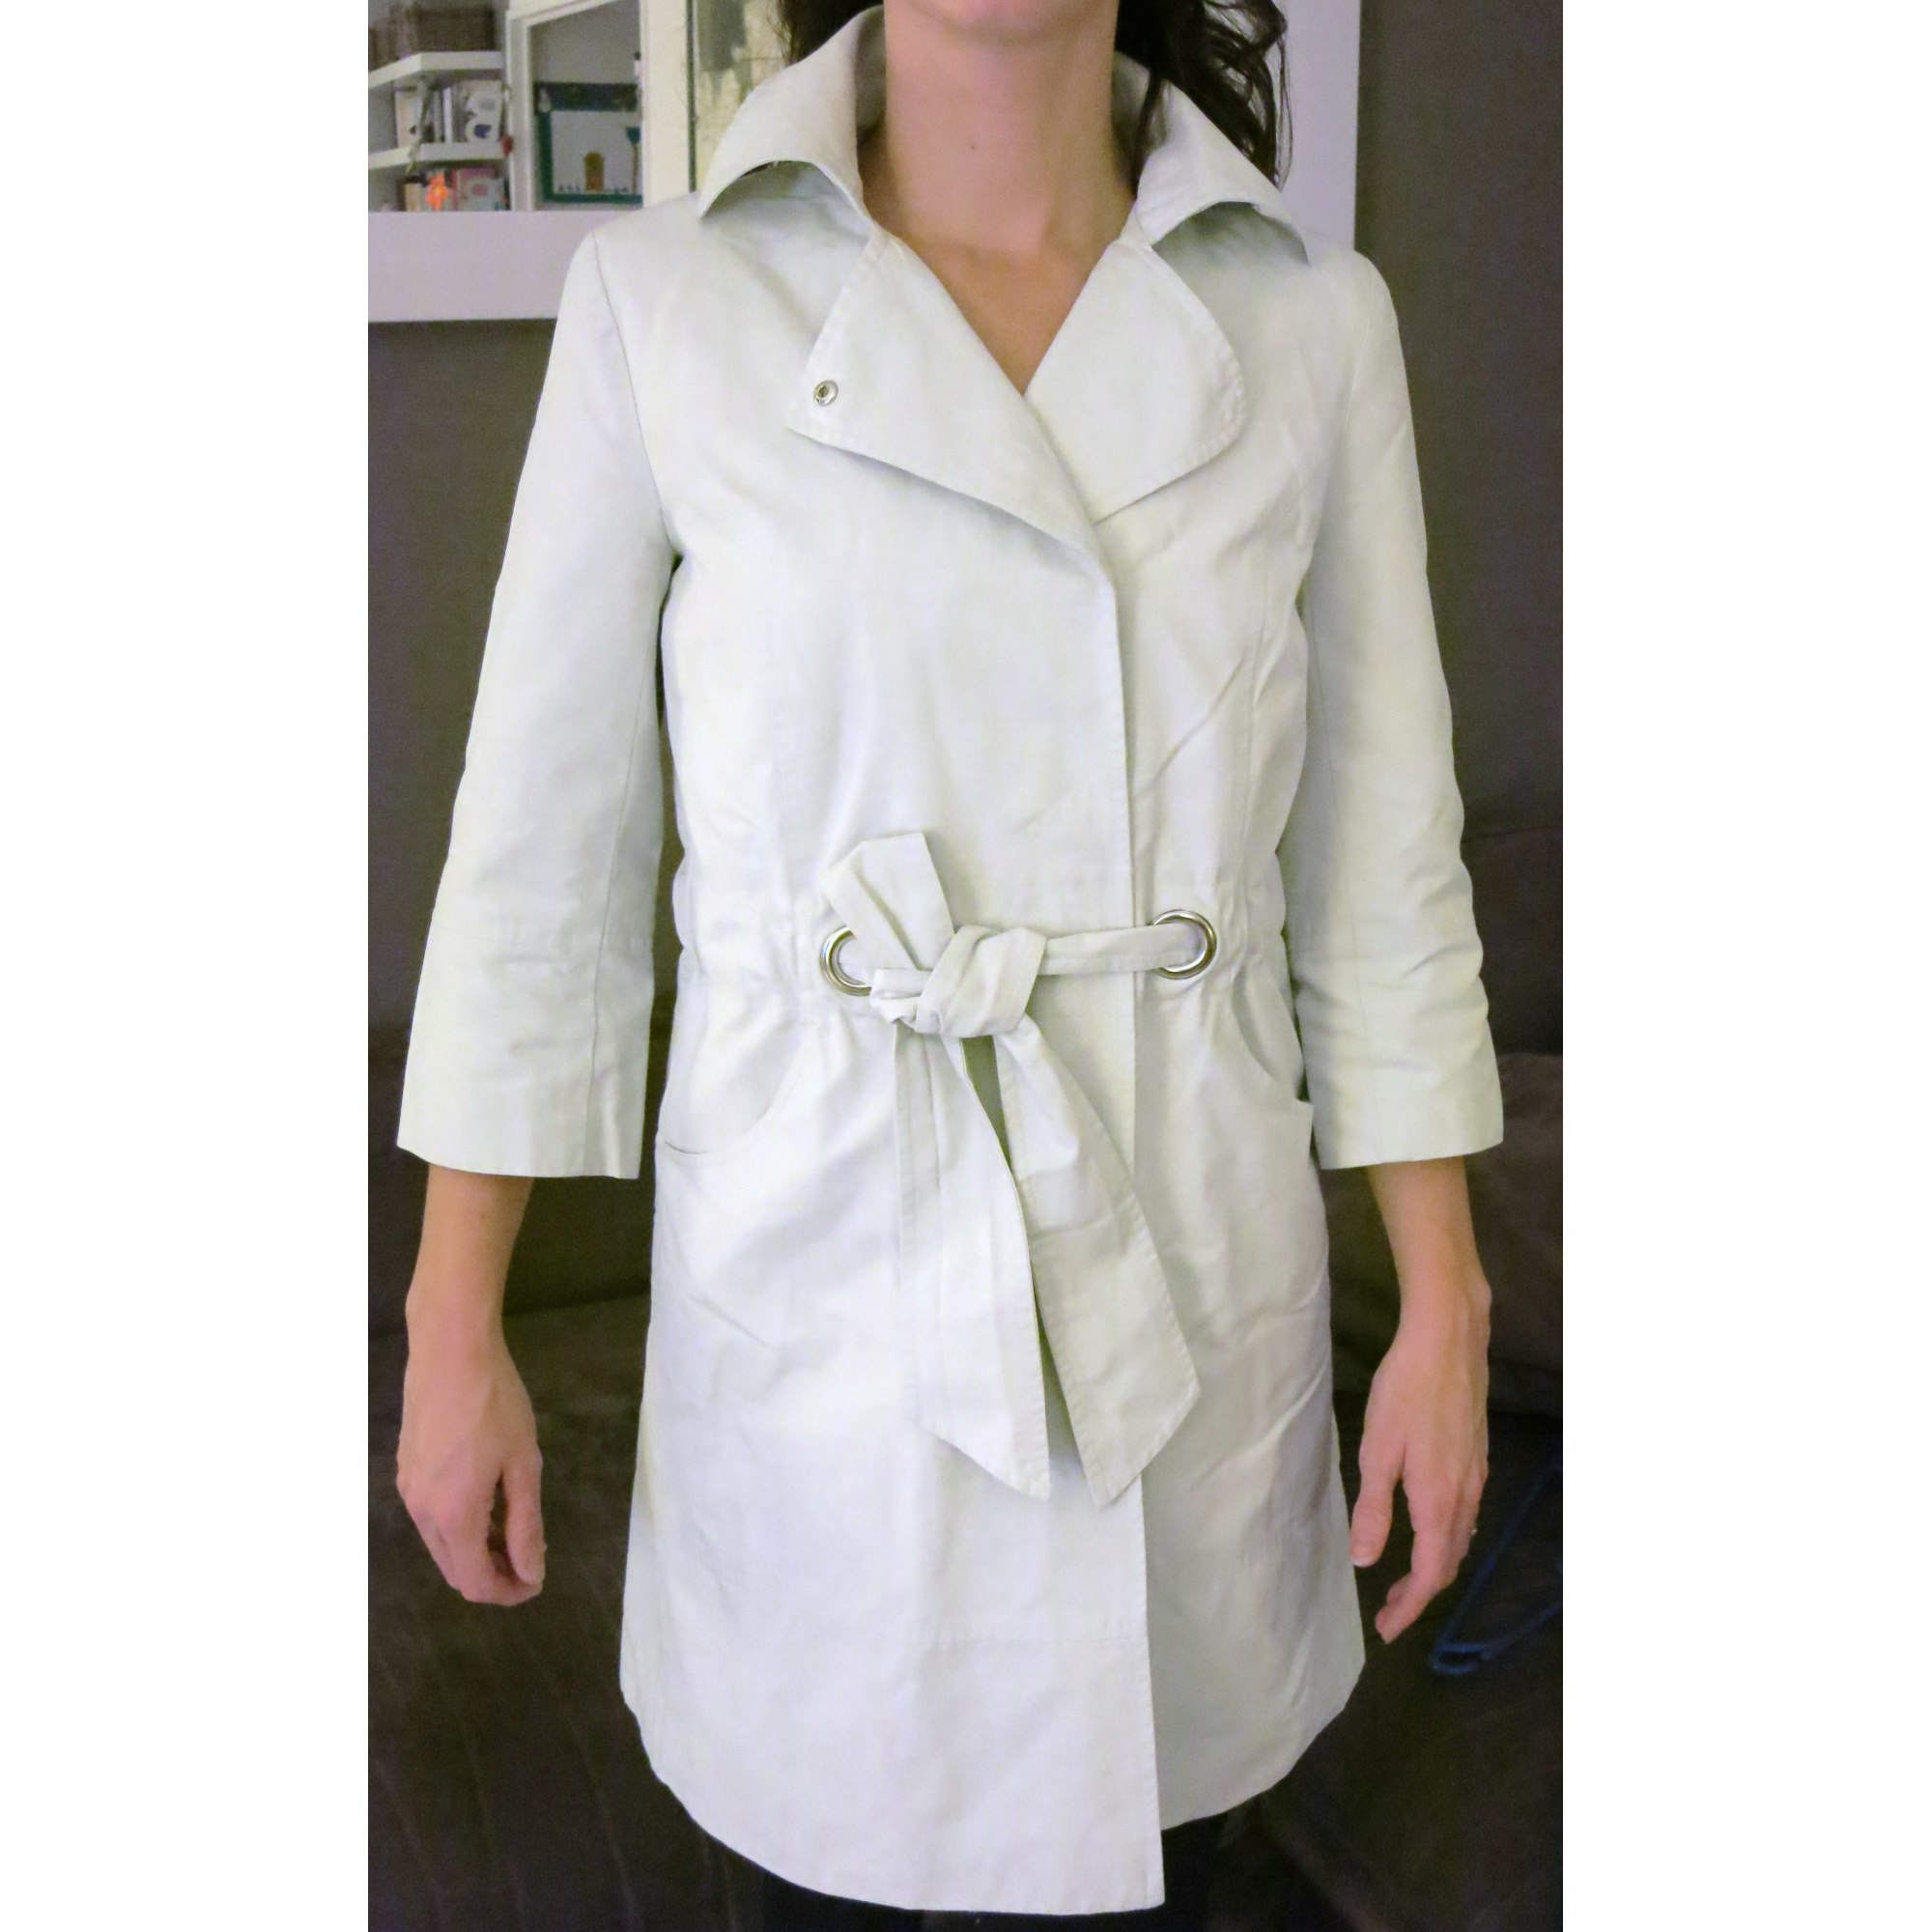 0a54399c08a9 Imperméable, trench CAROLL 36 (S, T1) gris - 4247906